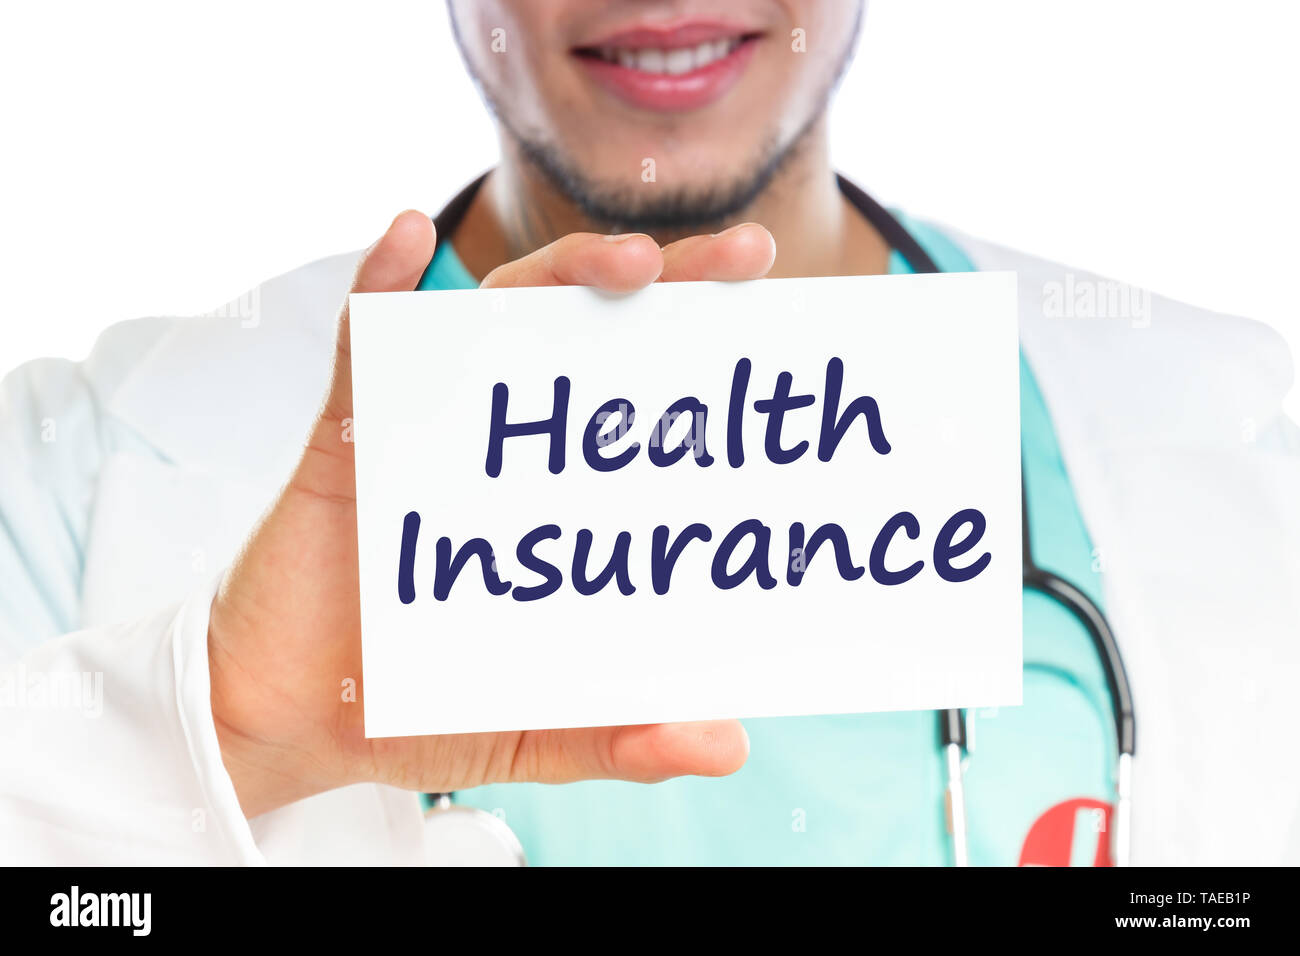 Doctor health insurance medical concept ill illness healthy with sign - Stock Image